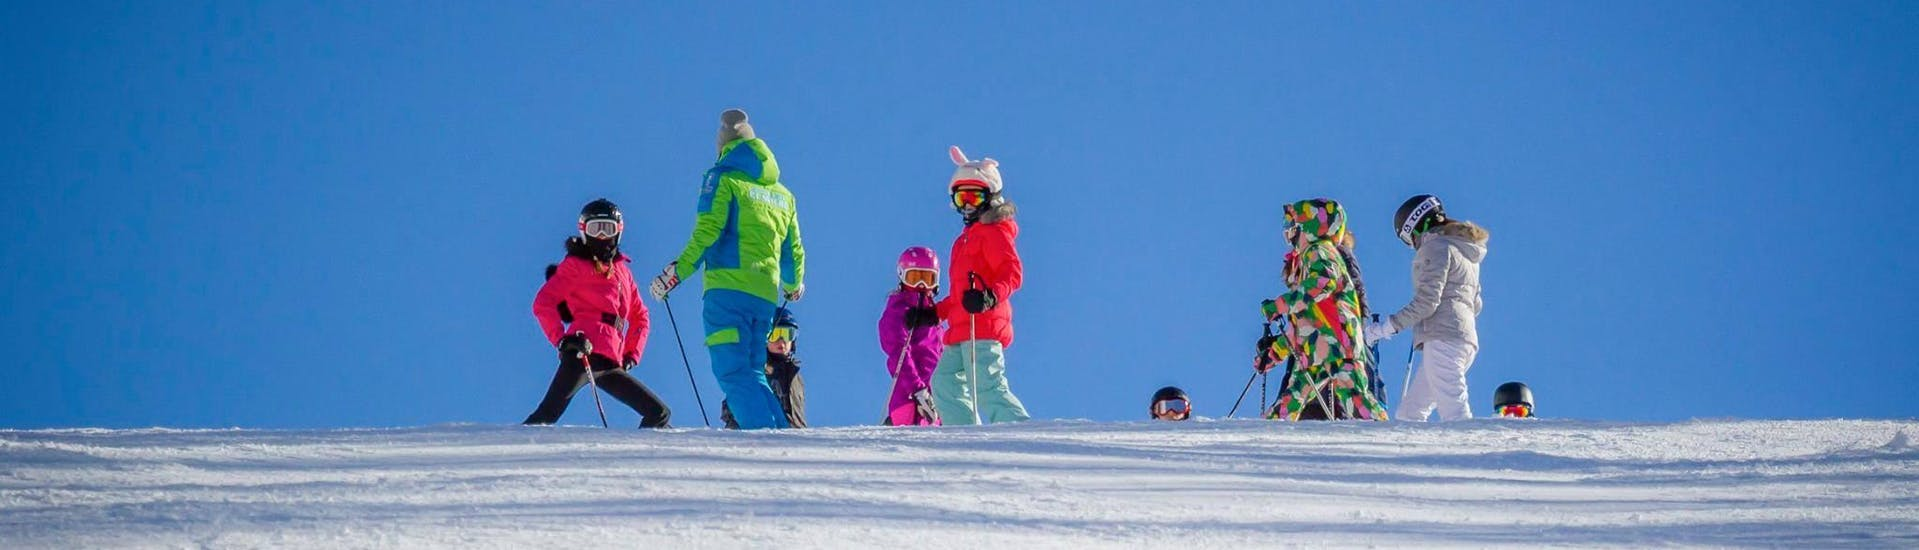 Ski Lessons for Kids (5-12 years) - All Levels